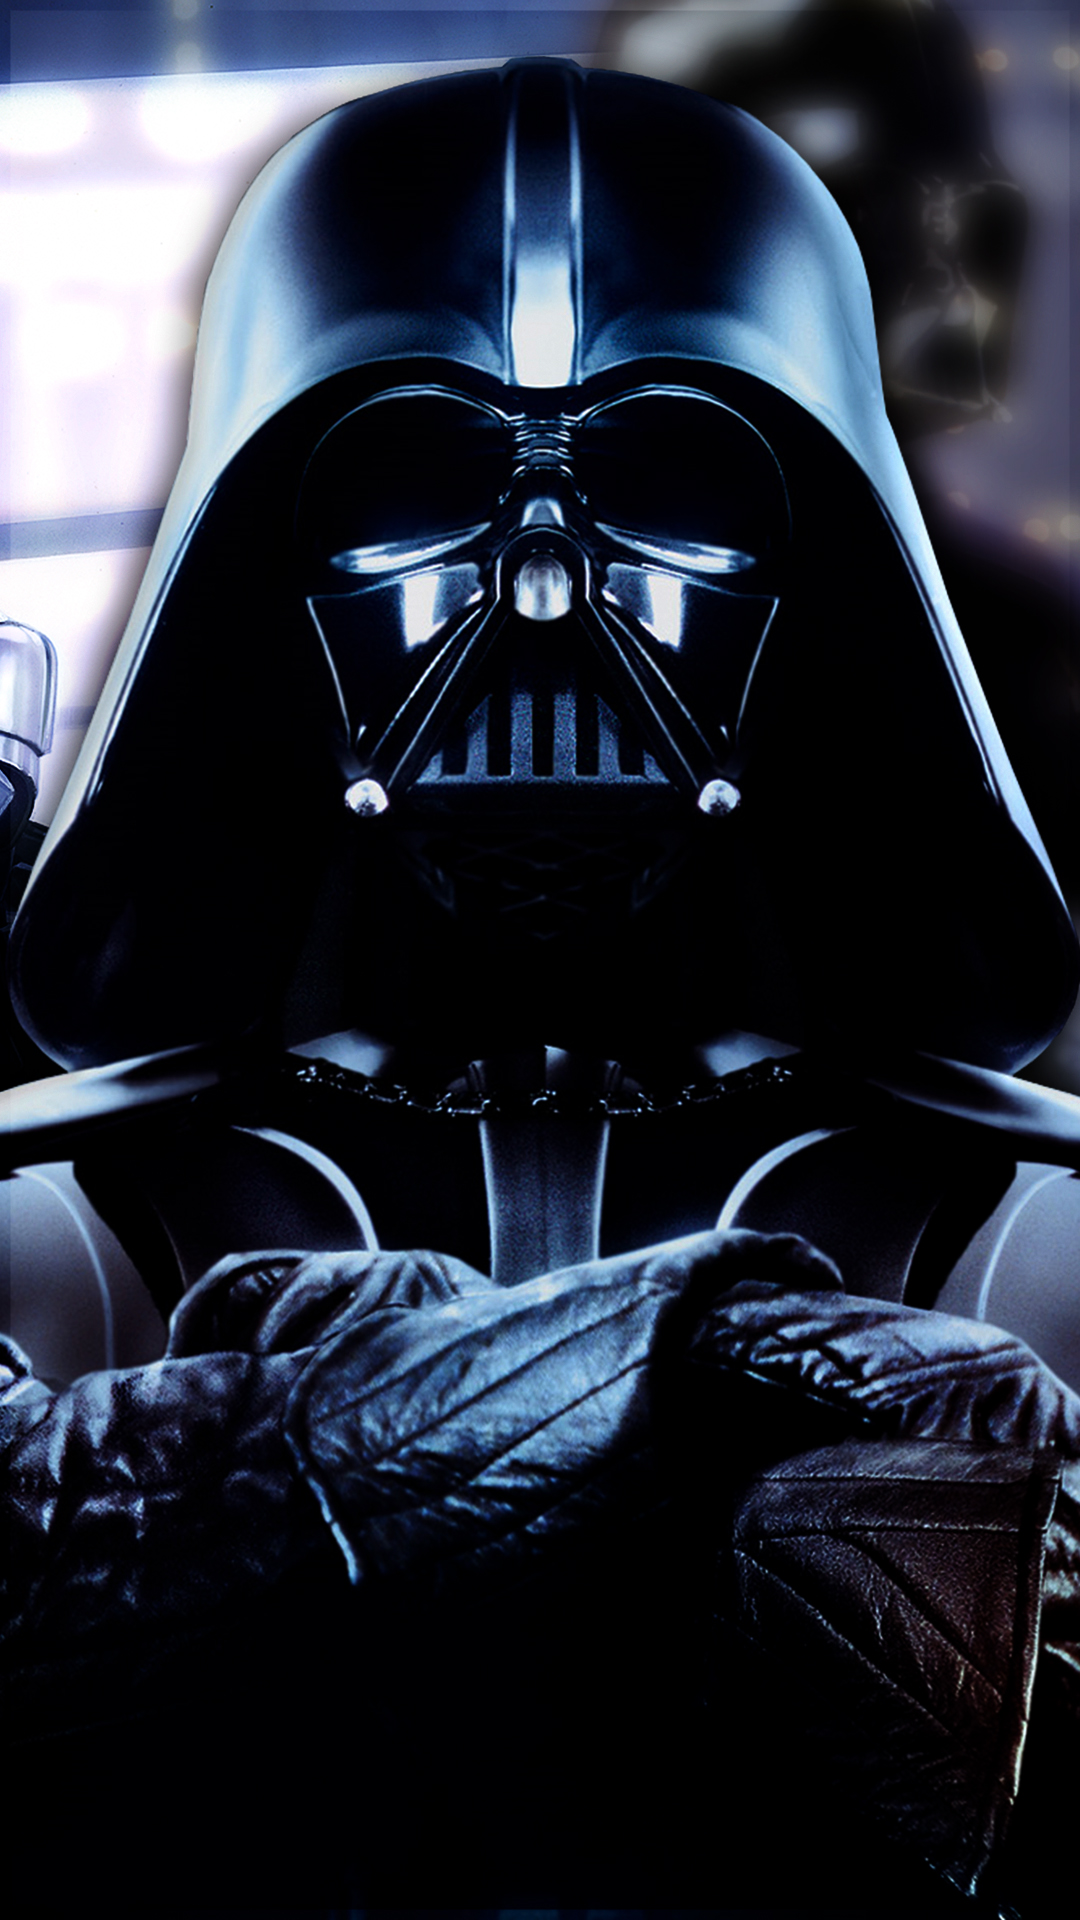 Darth Vader Wallpaper Phone 1080x1920 Download Hd Wallpaper Wallpapertip